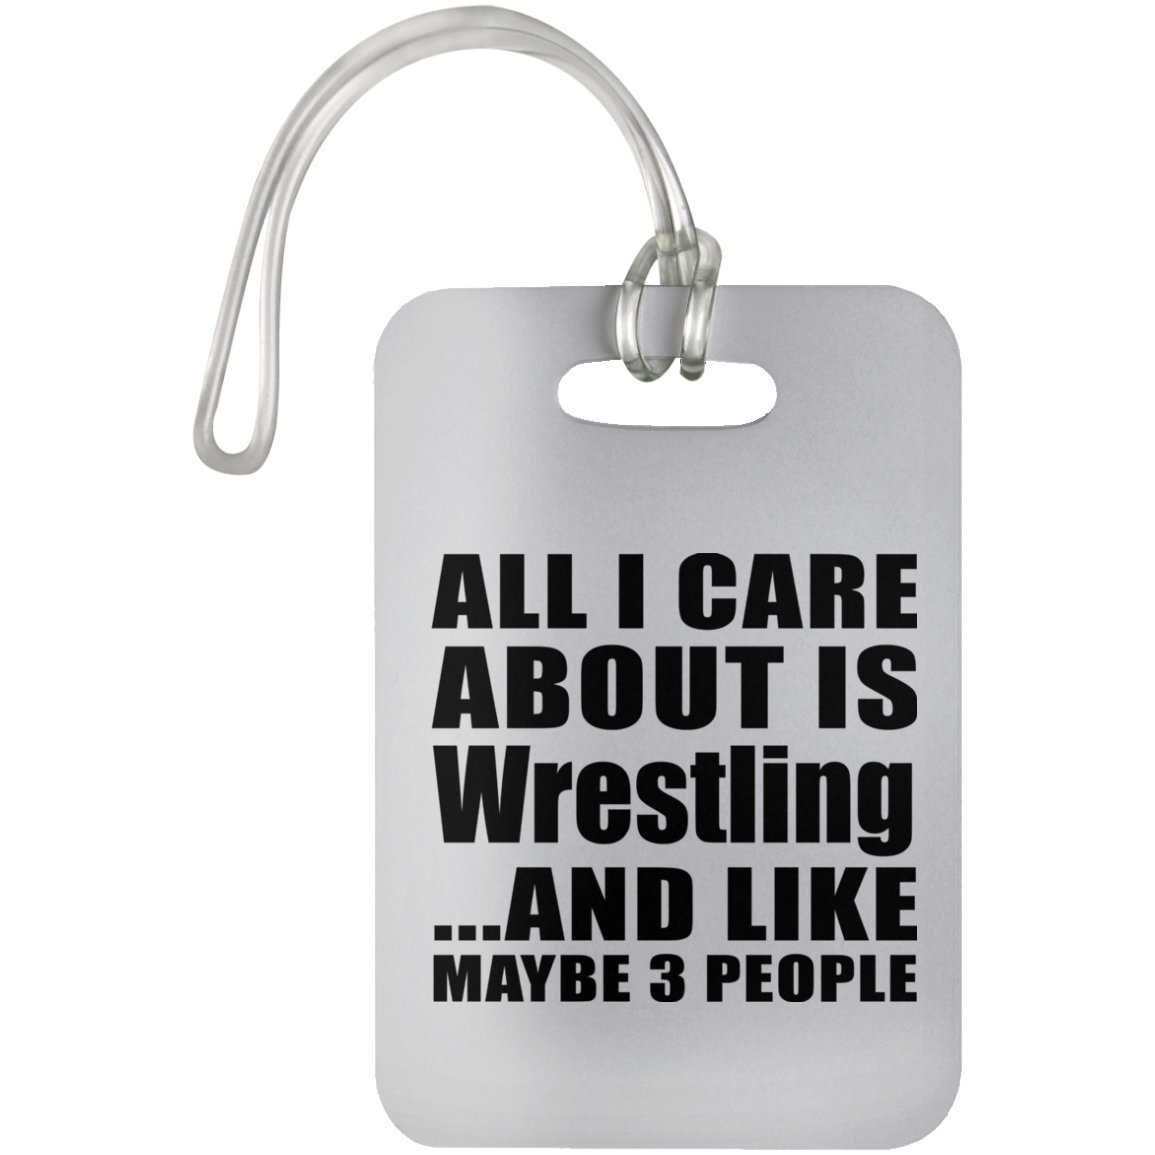 All I Care About Is Wrestling And Like Maybe 3 People - Luggage Tag, Suitcase Bag ID Tag by Designsify